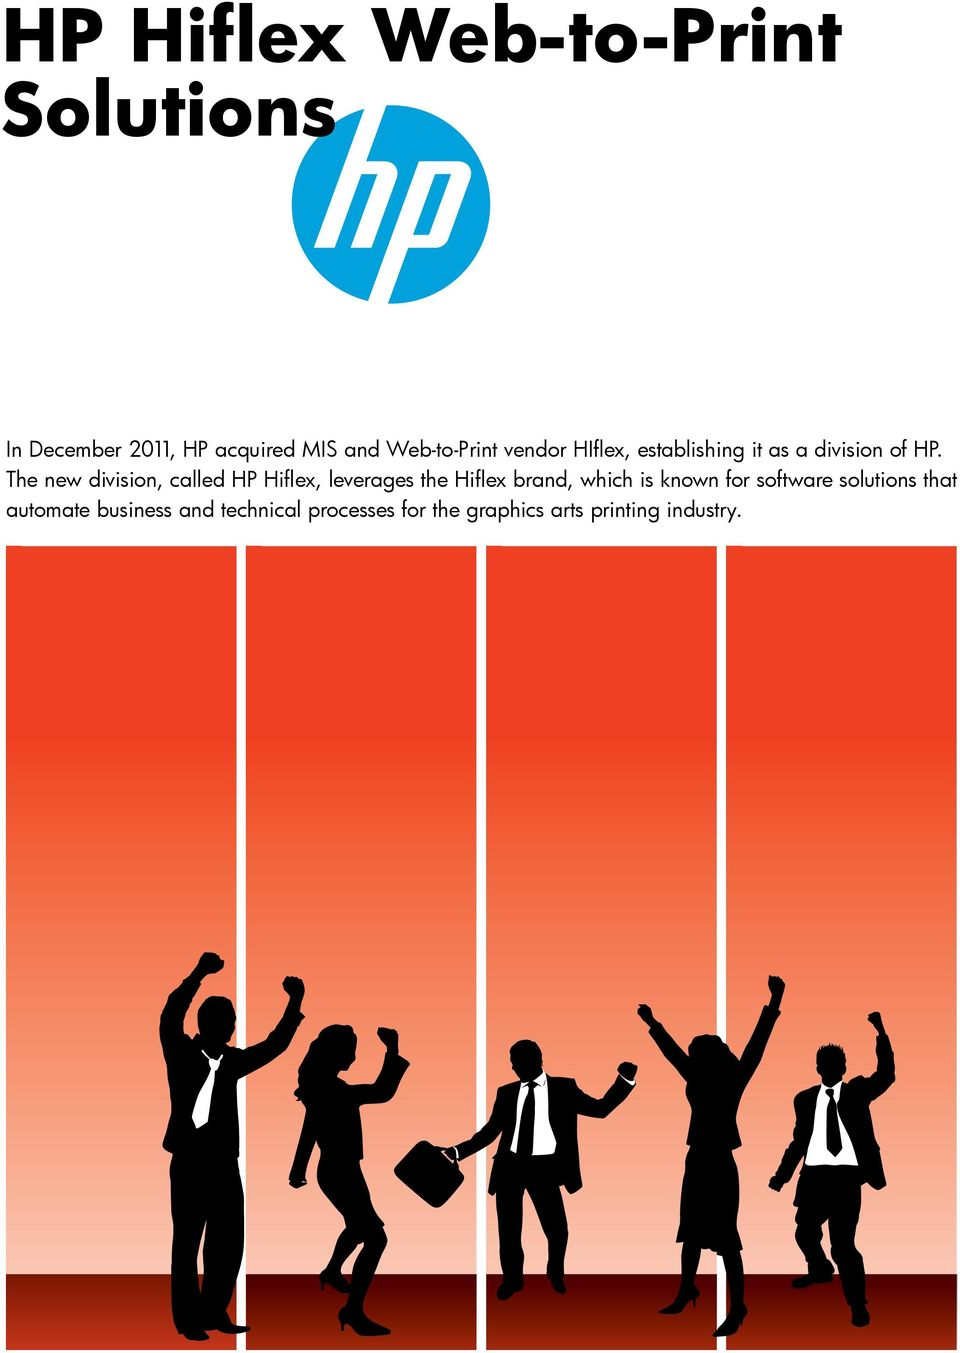 The new division, called HP Hiflex, leverages the Hiflex brand, which is known